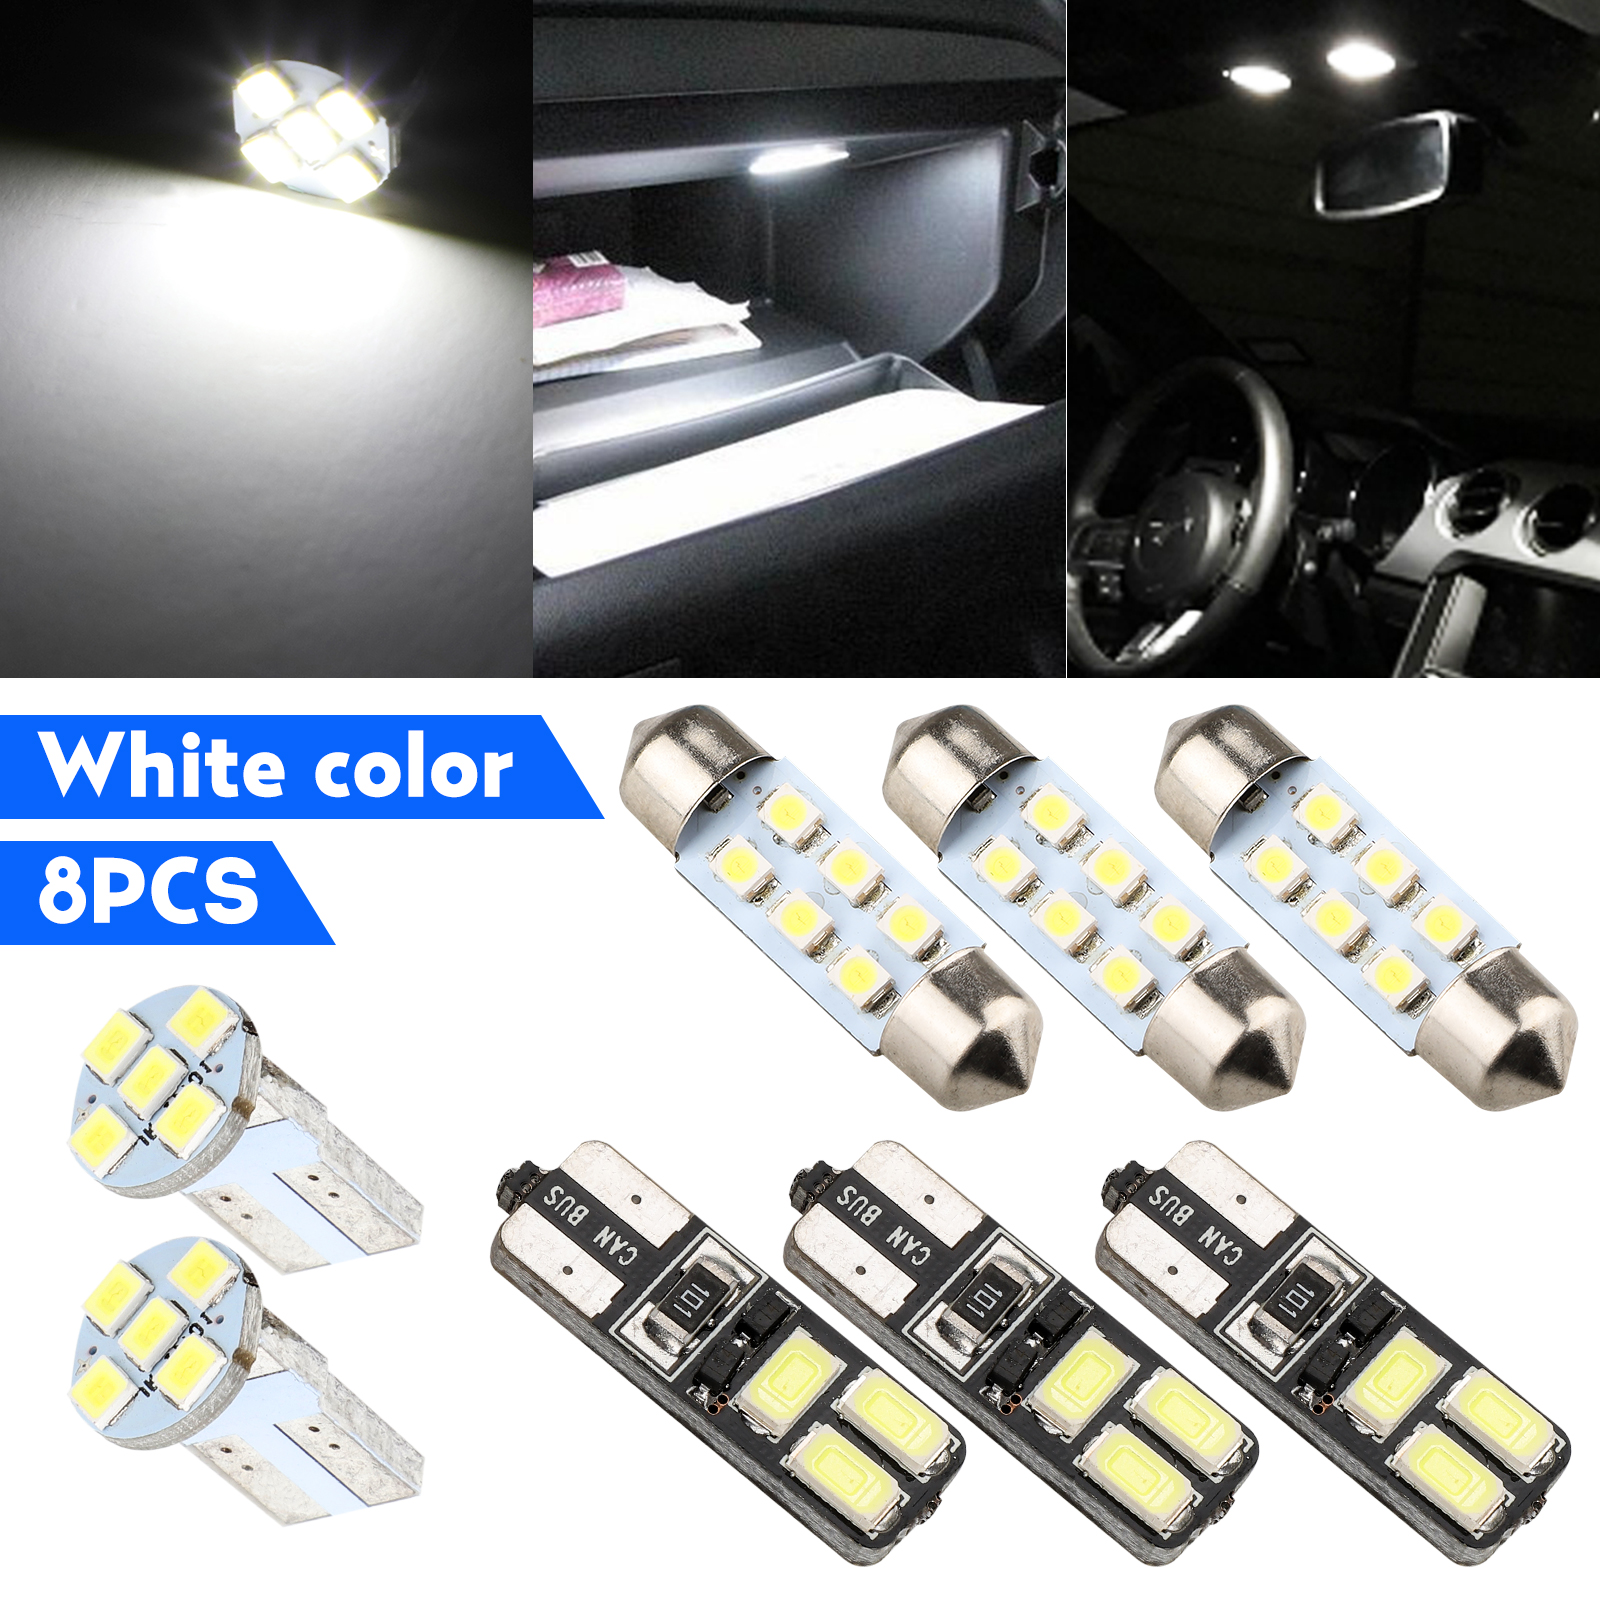 8x White LED Map Dome License Plate Light Interior LED Light Package For Car